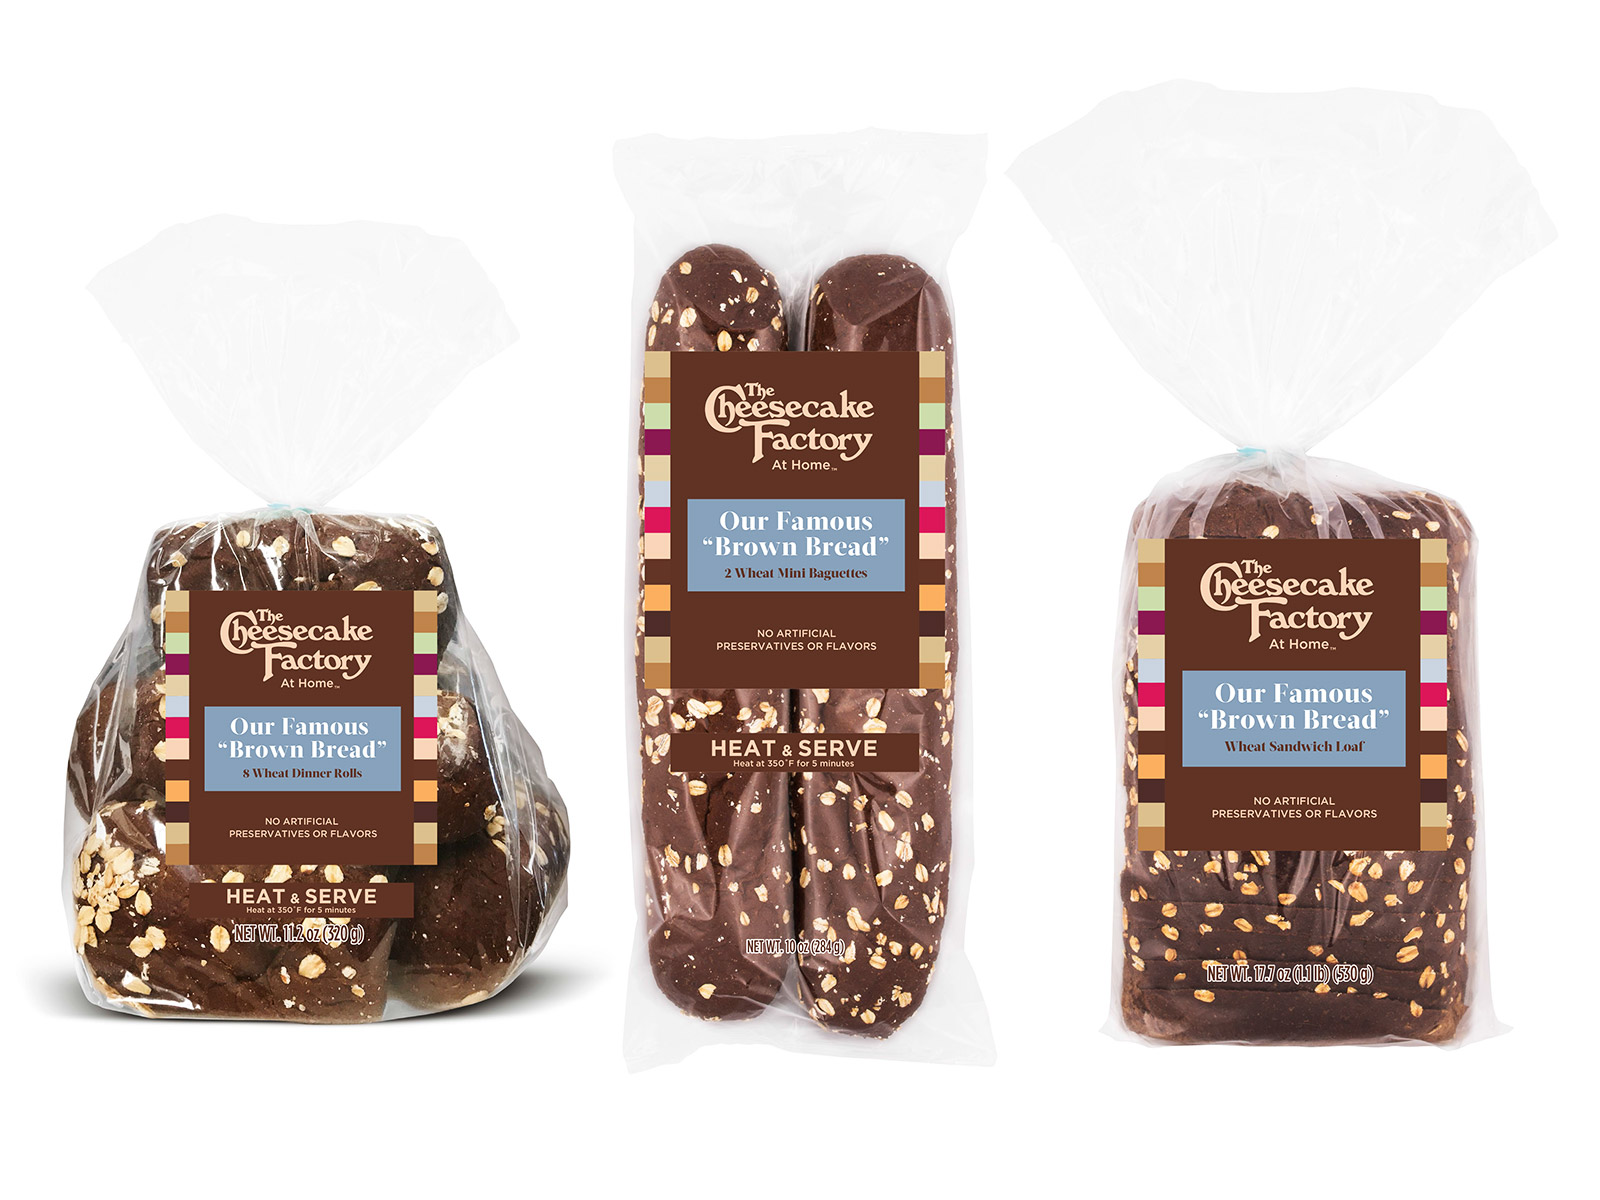 cheesecake factory brown bread